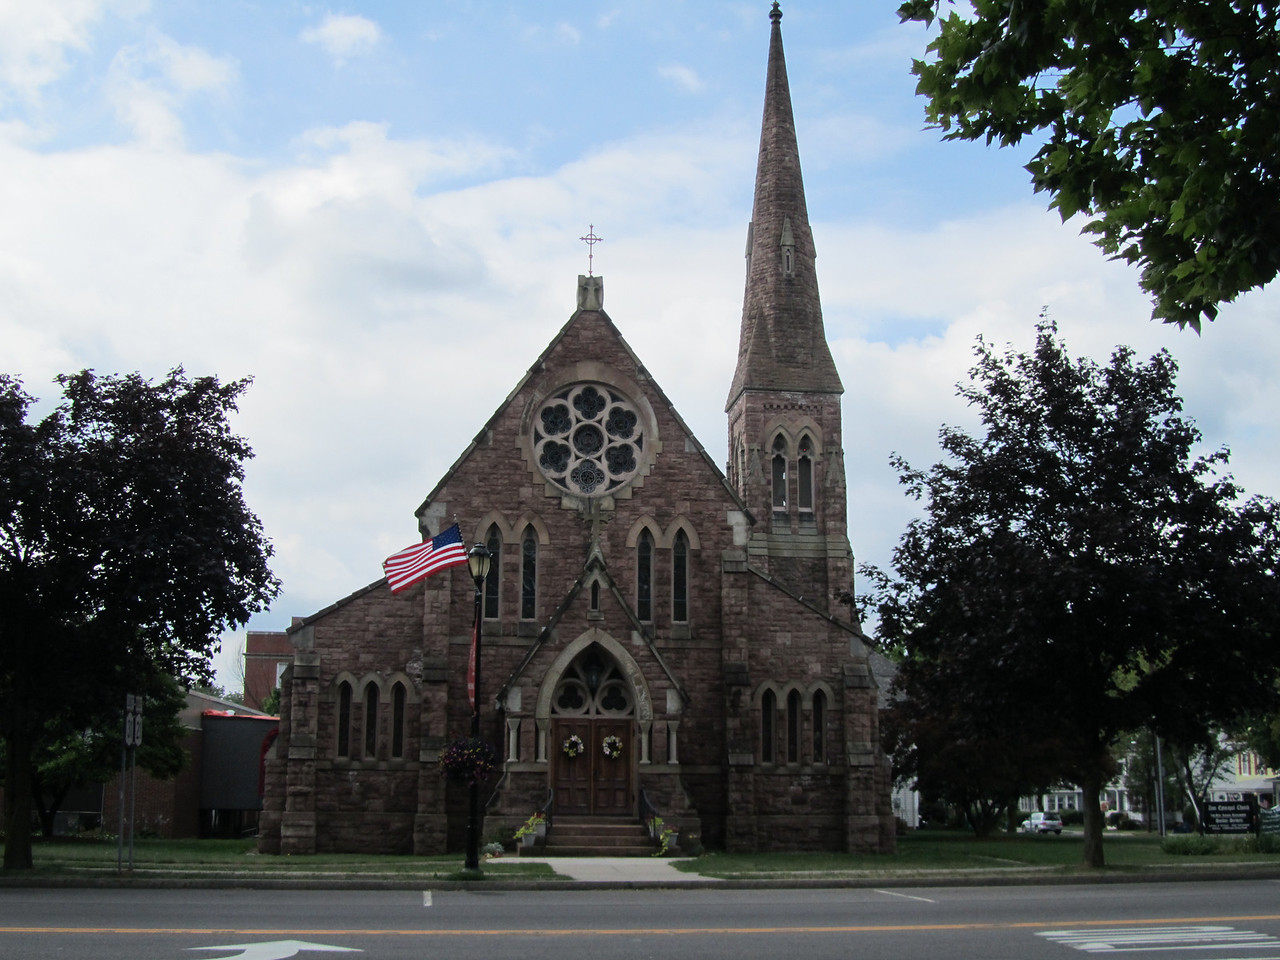 The Zion Episcopal Church on the SE corner.